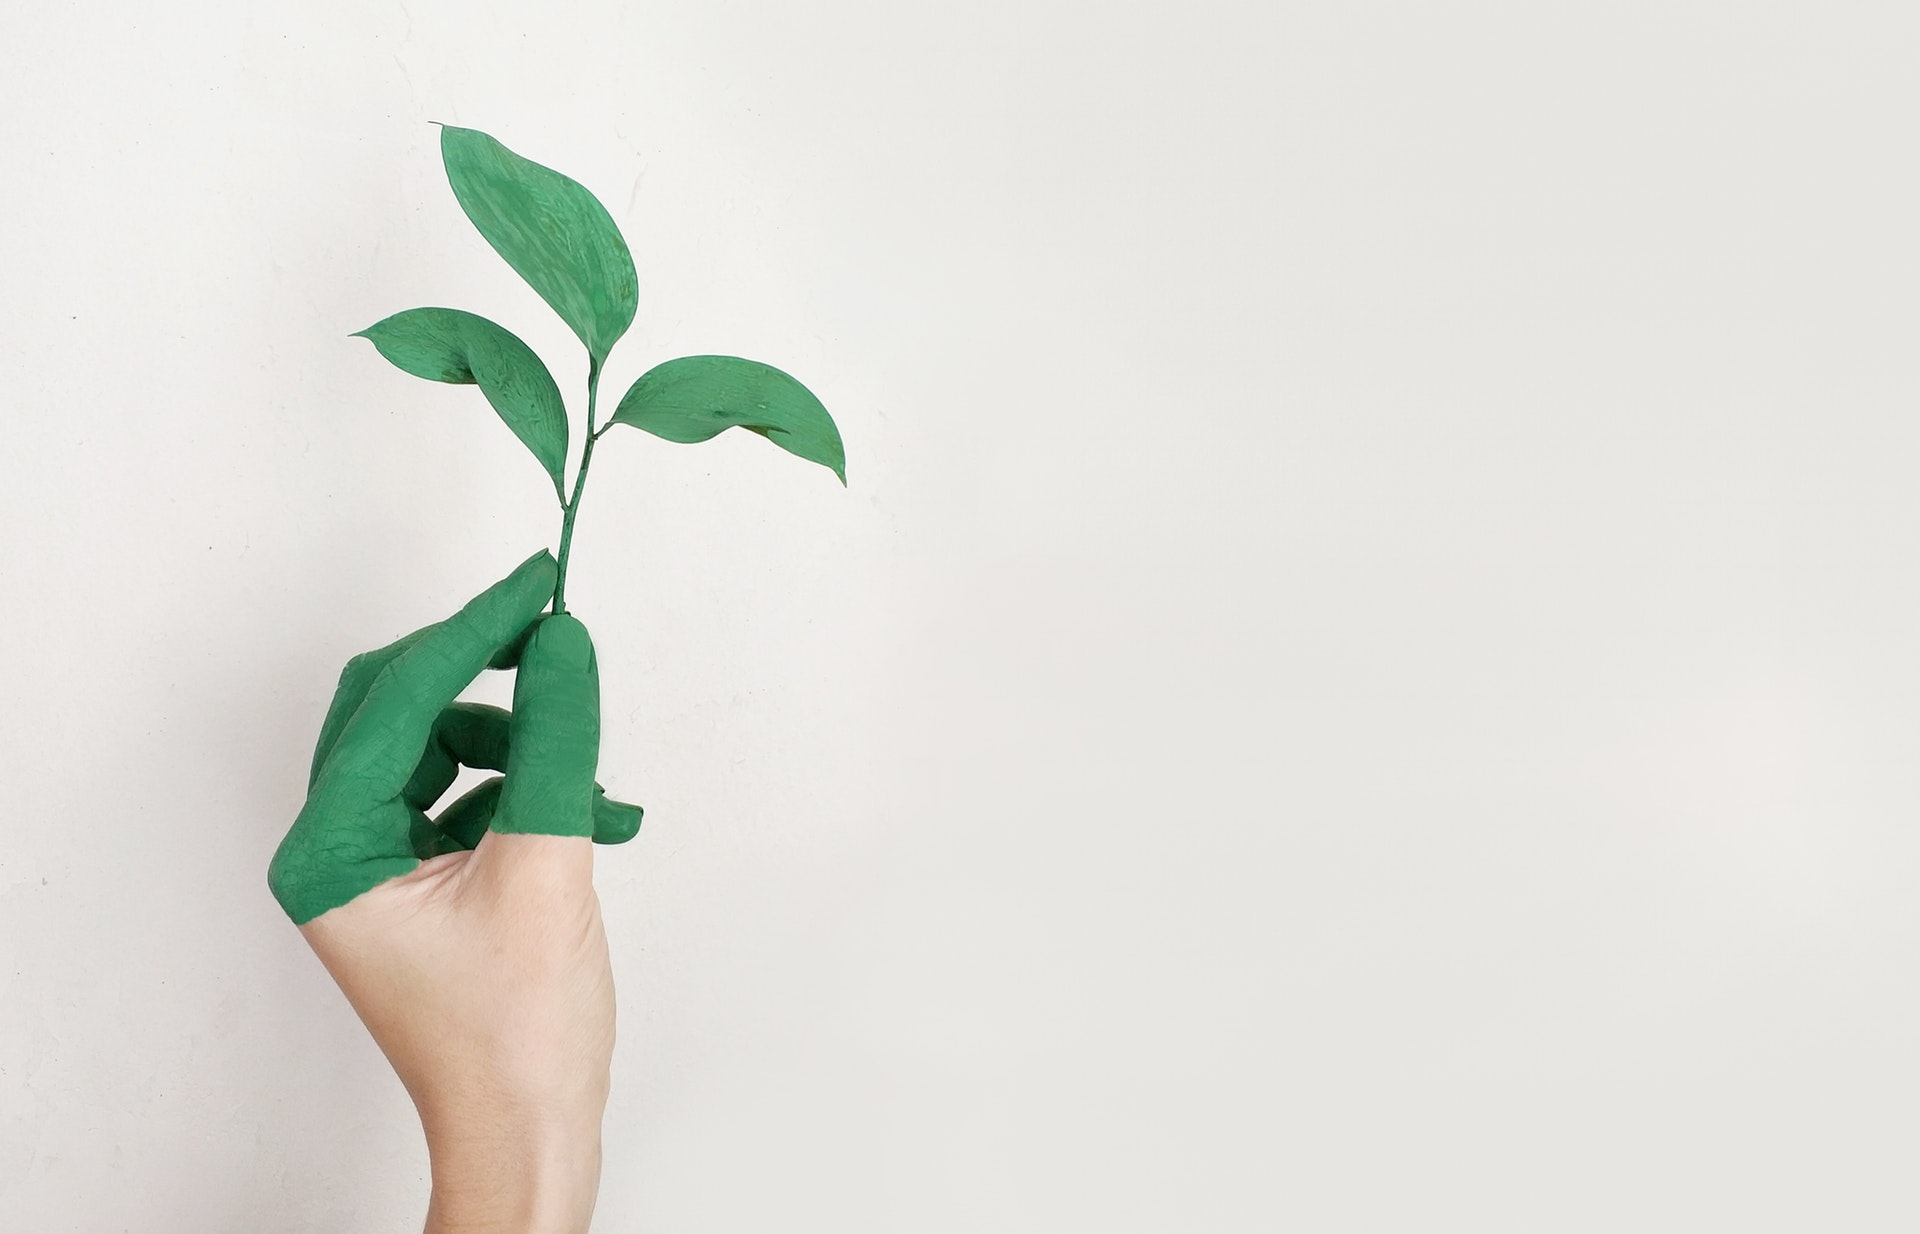 Hand dipped in green paint holds a plant sprig against white background